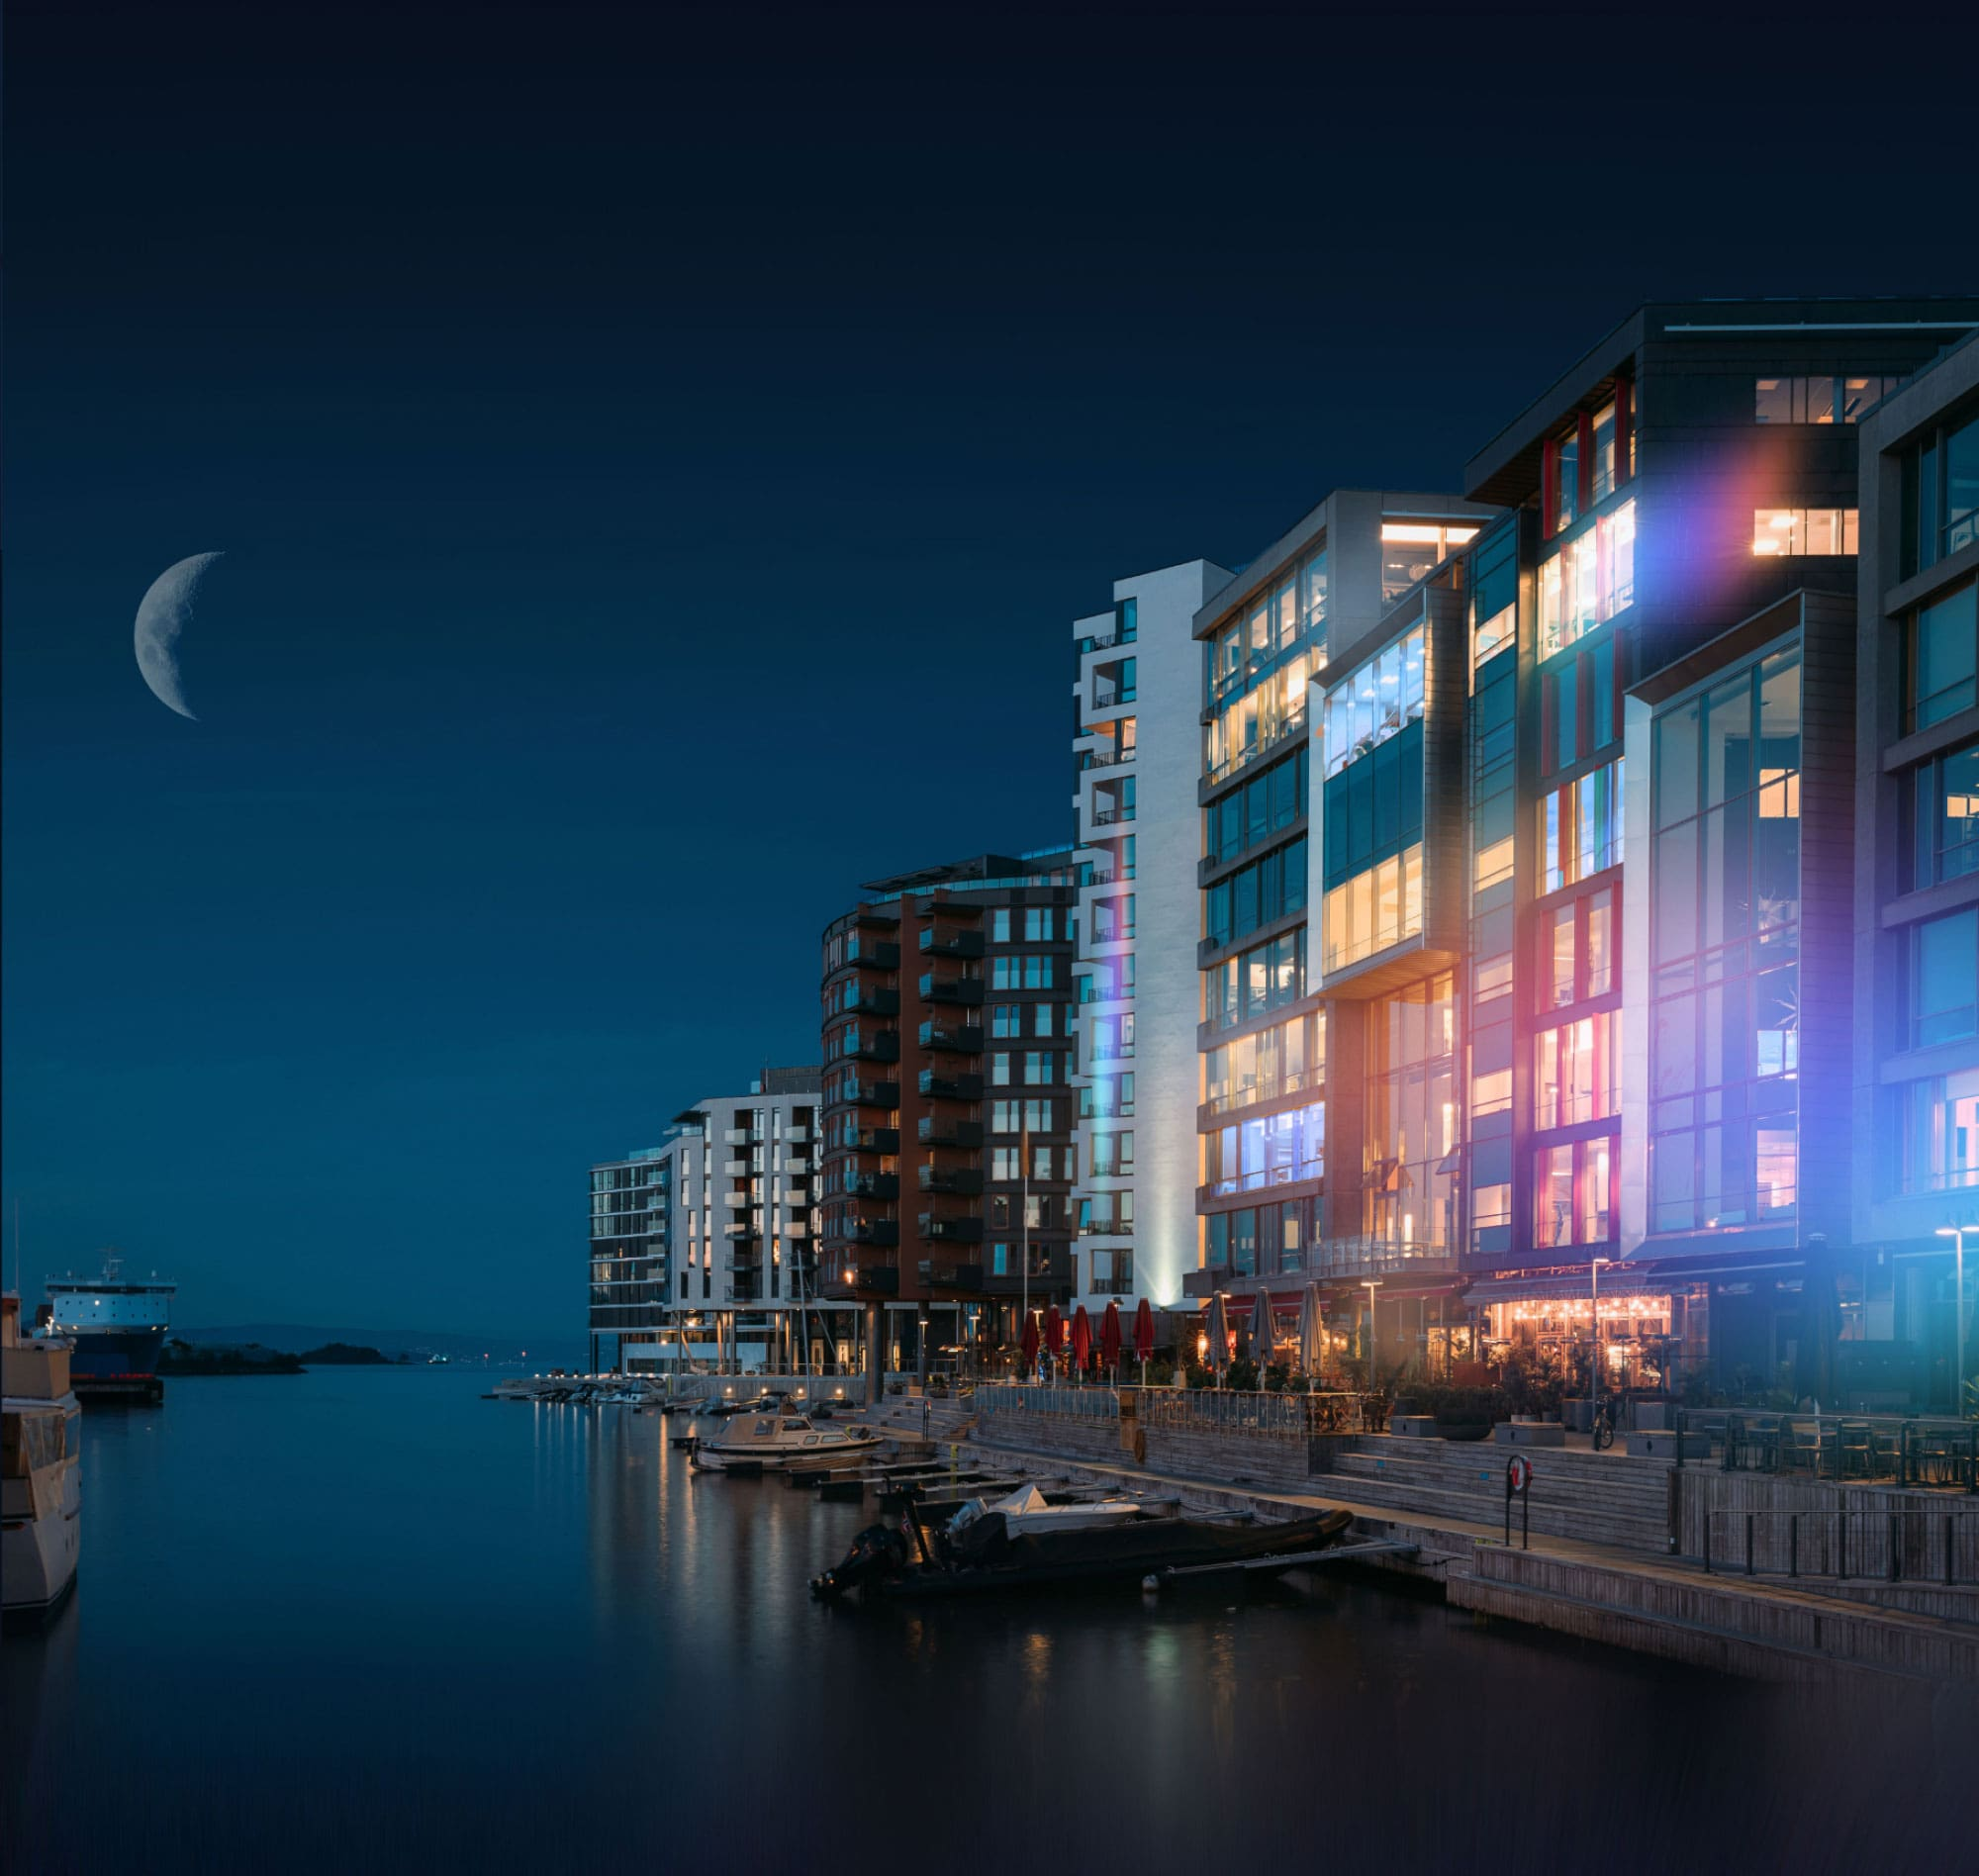 City skyline on the water with colorful lights showing different heat signatures